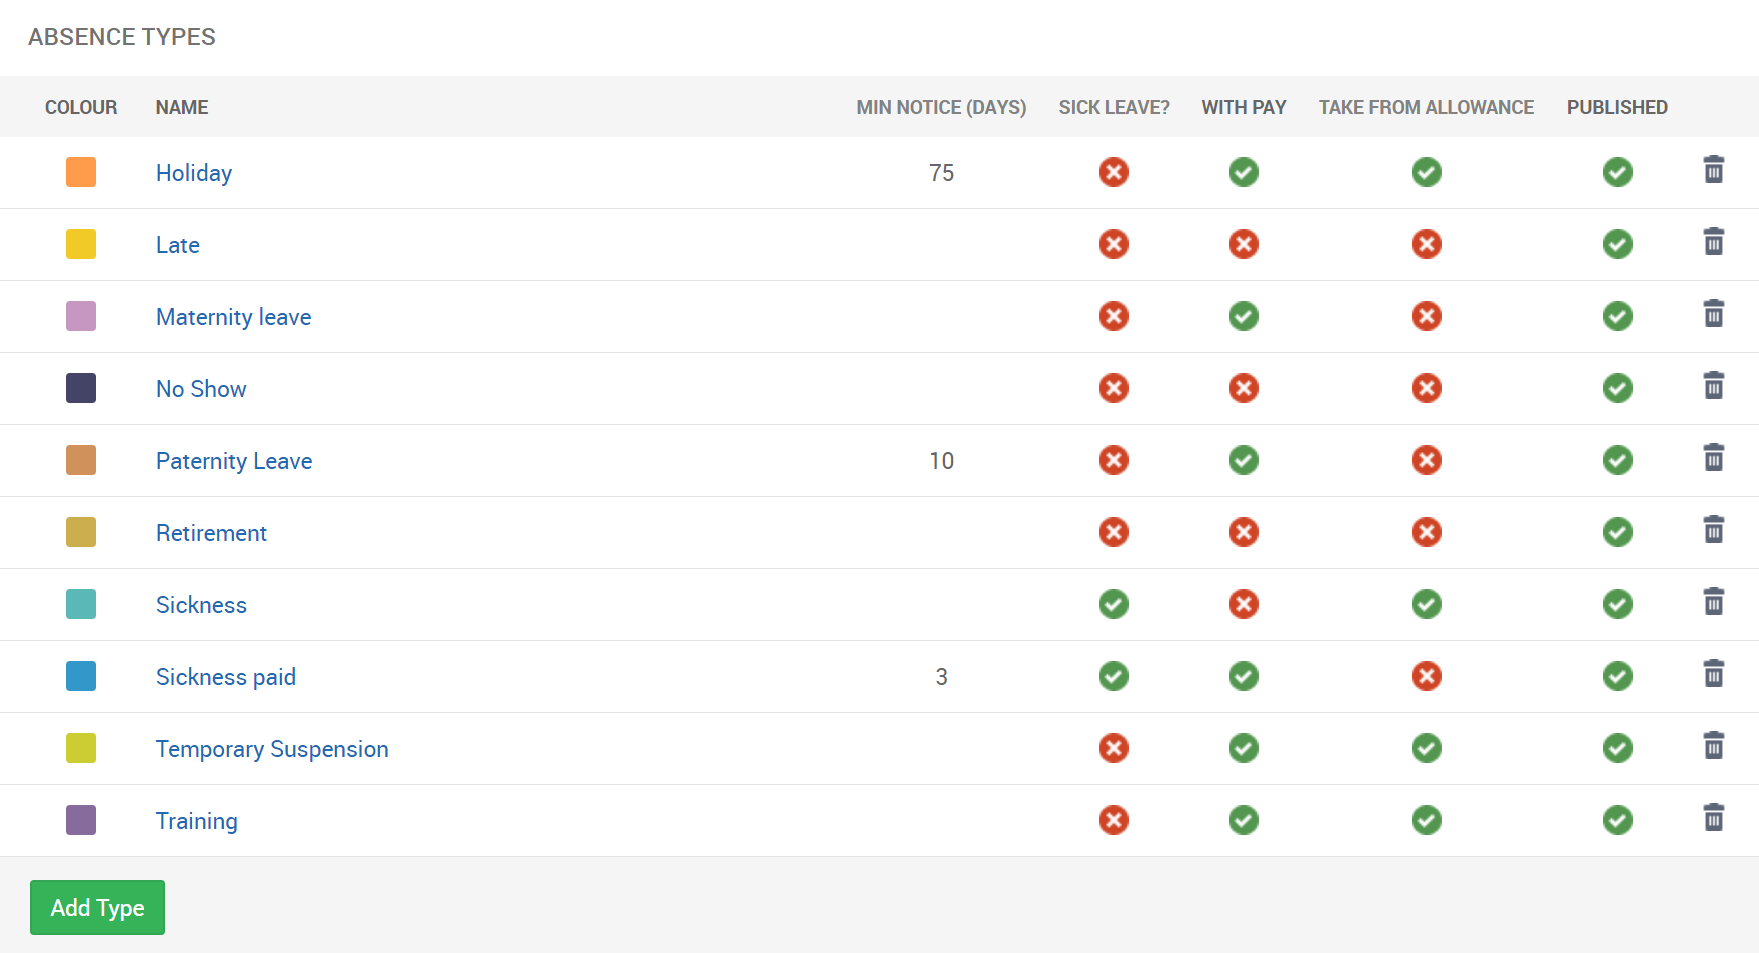 Custom Absence Types in PARiM´s Staff Management Software